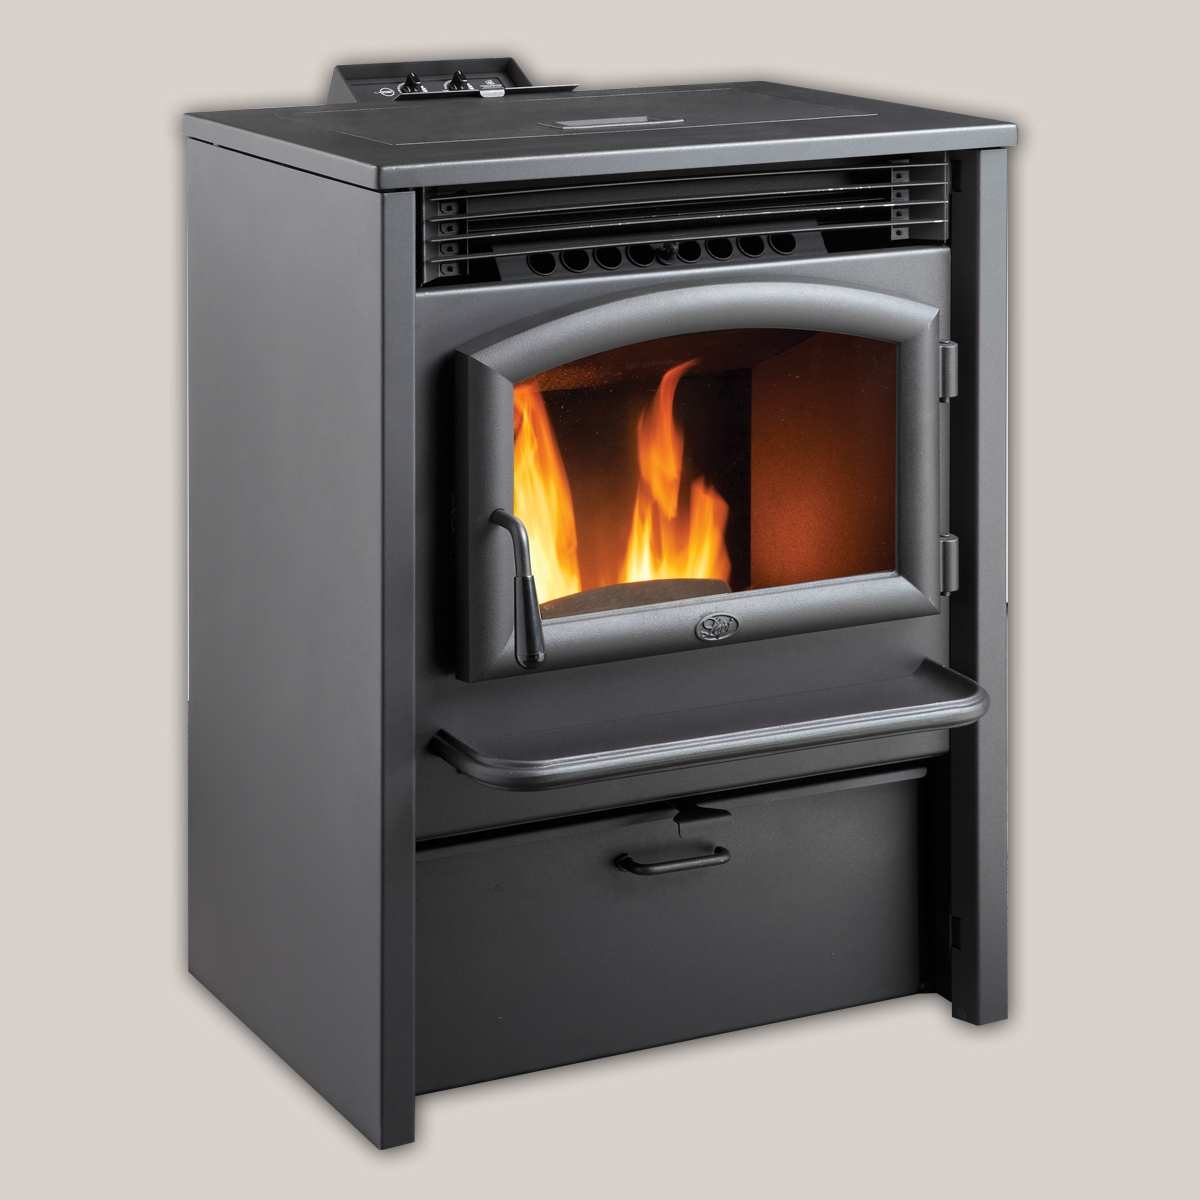 Agp Pellet Stove Lopi Country Stove Country Stove Patio